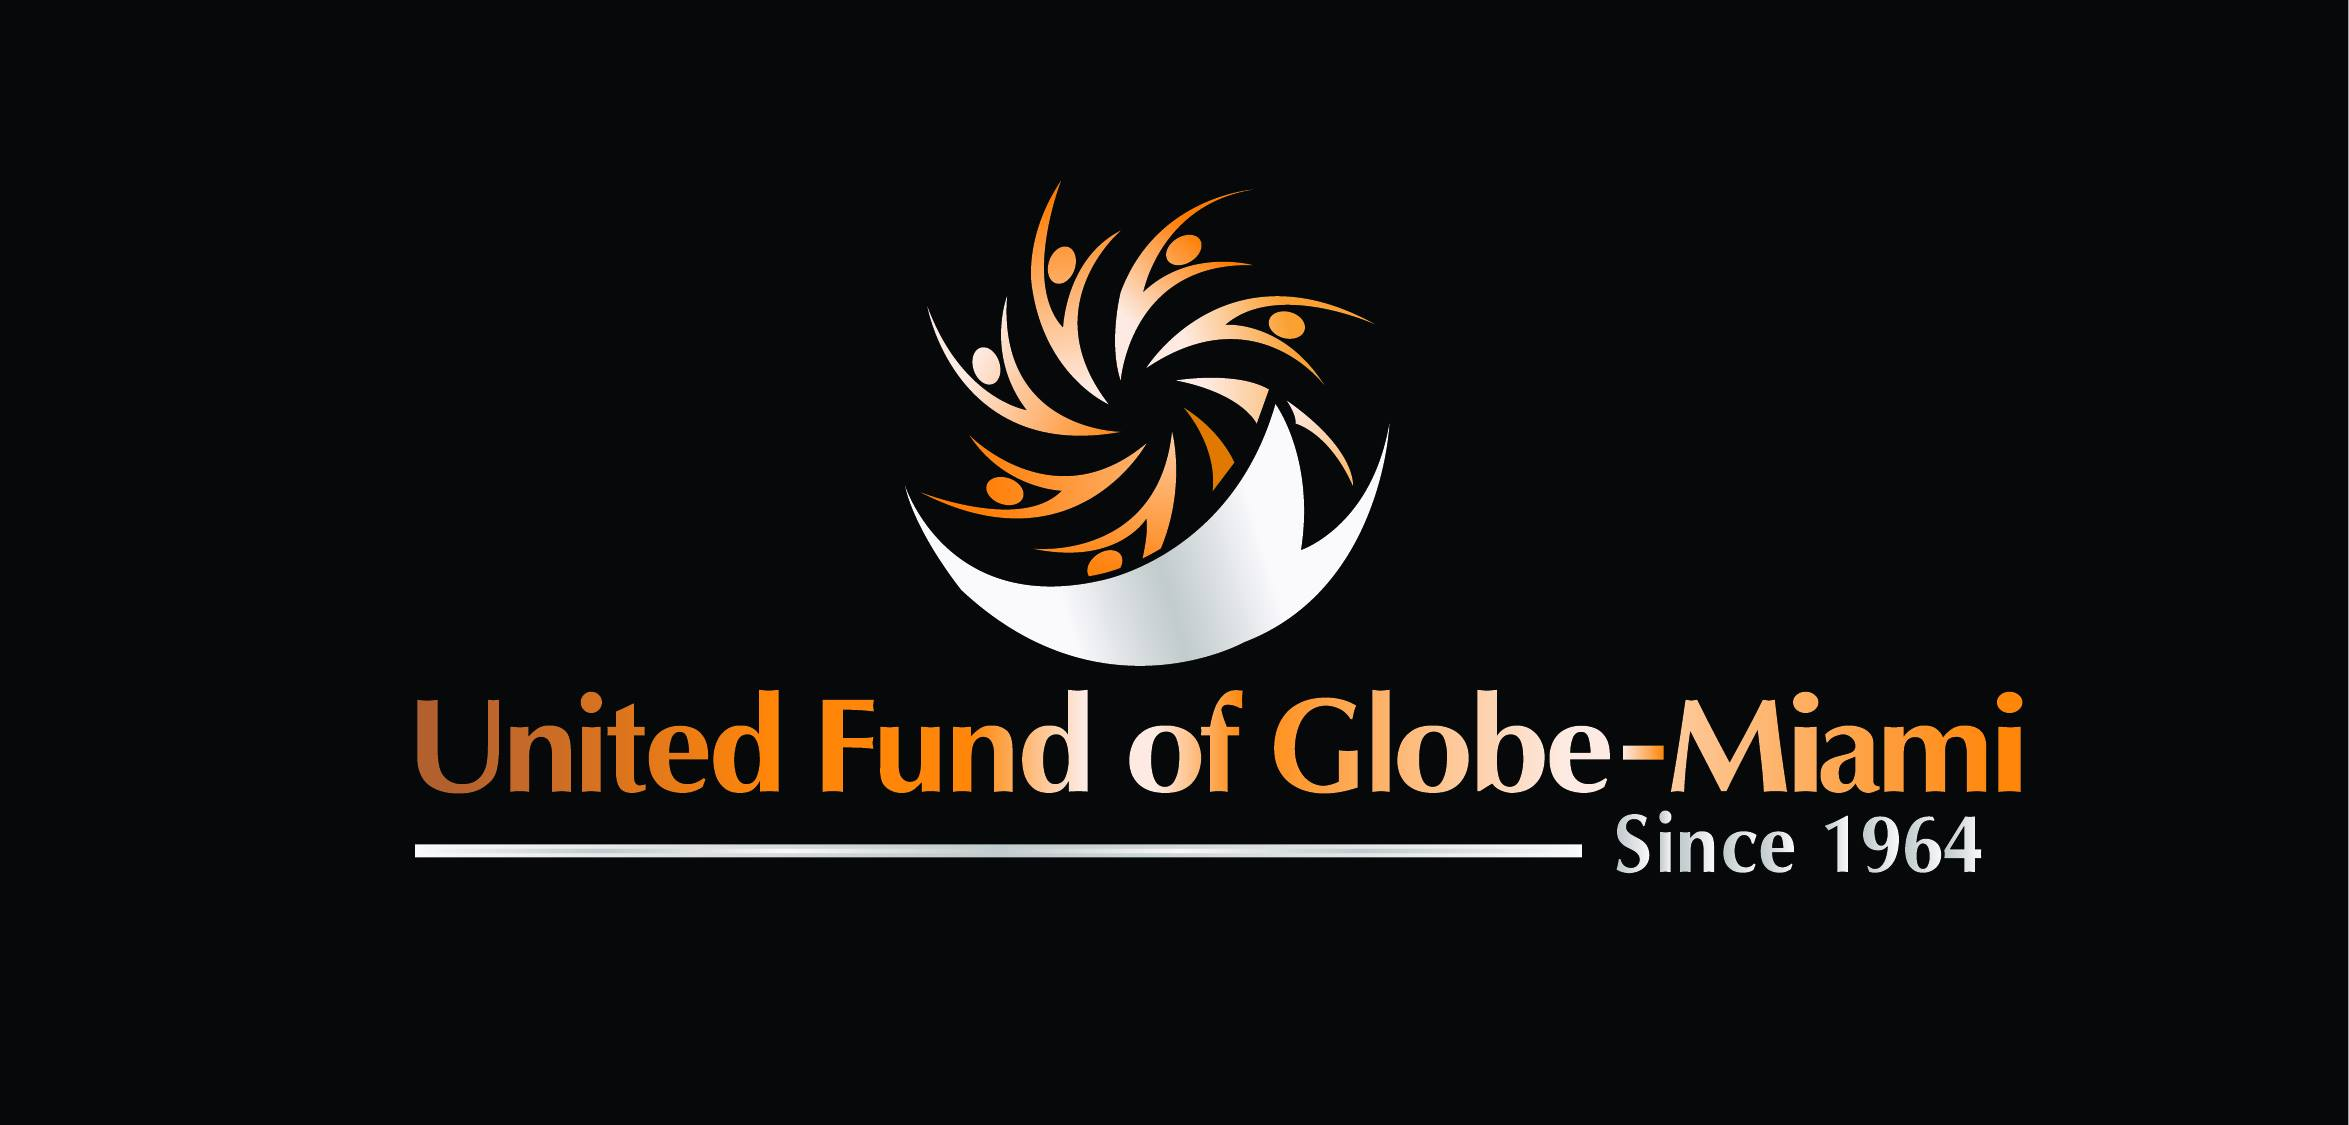 United Fund of Globe Miami